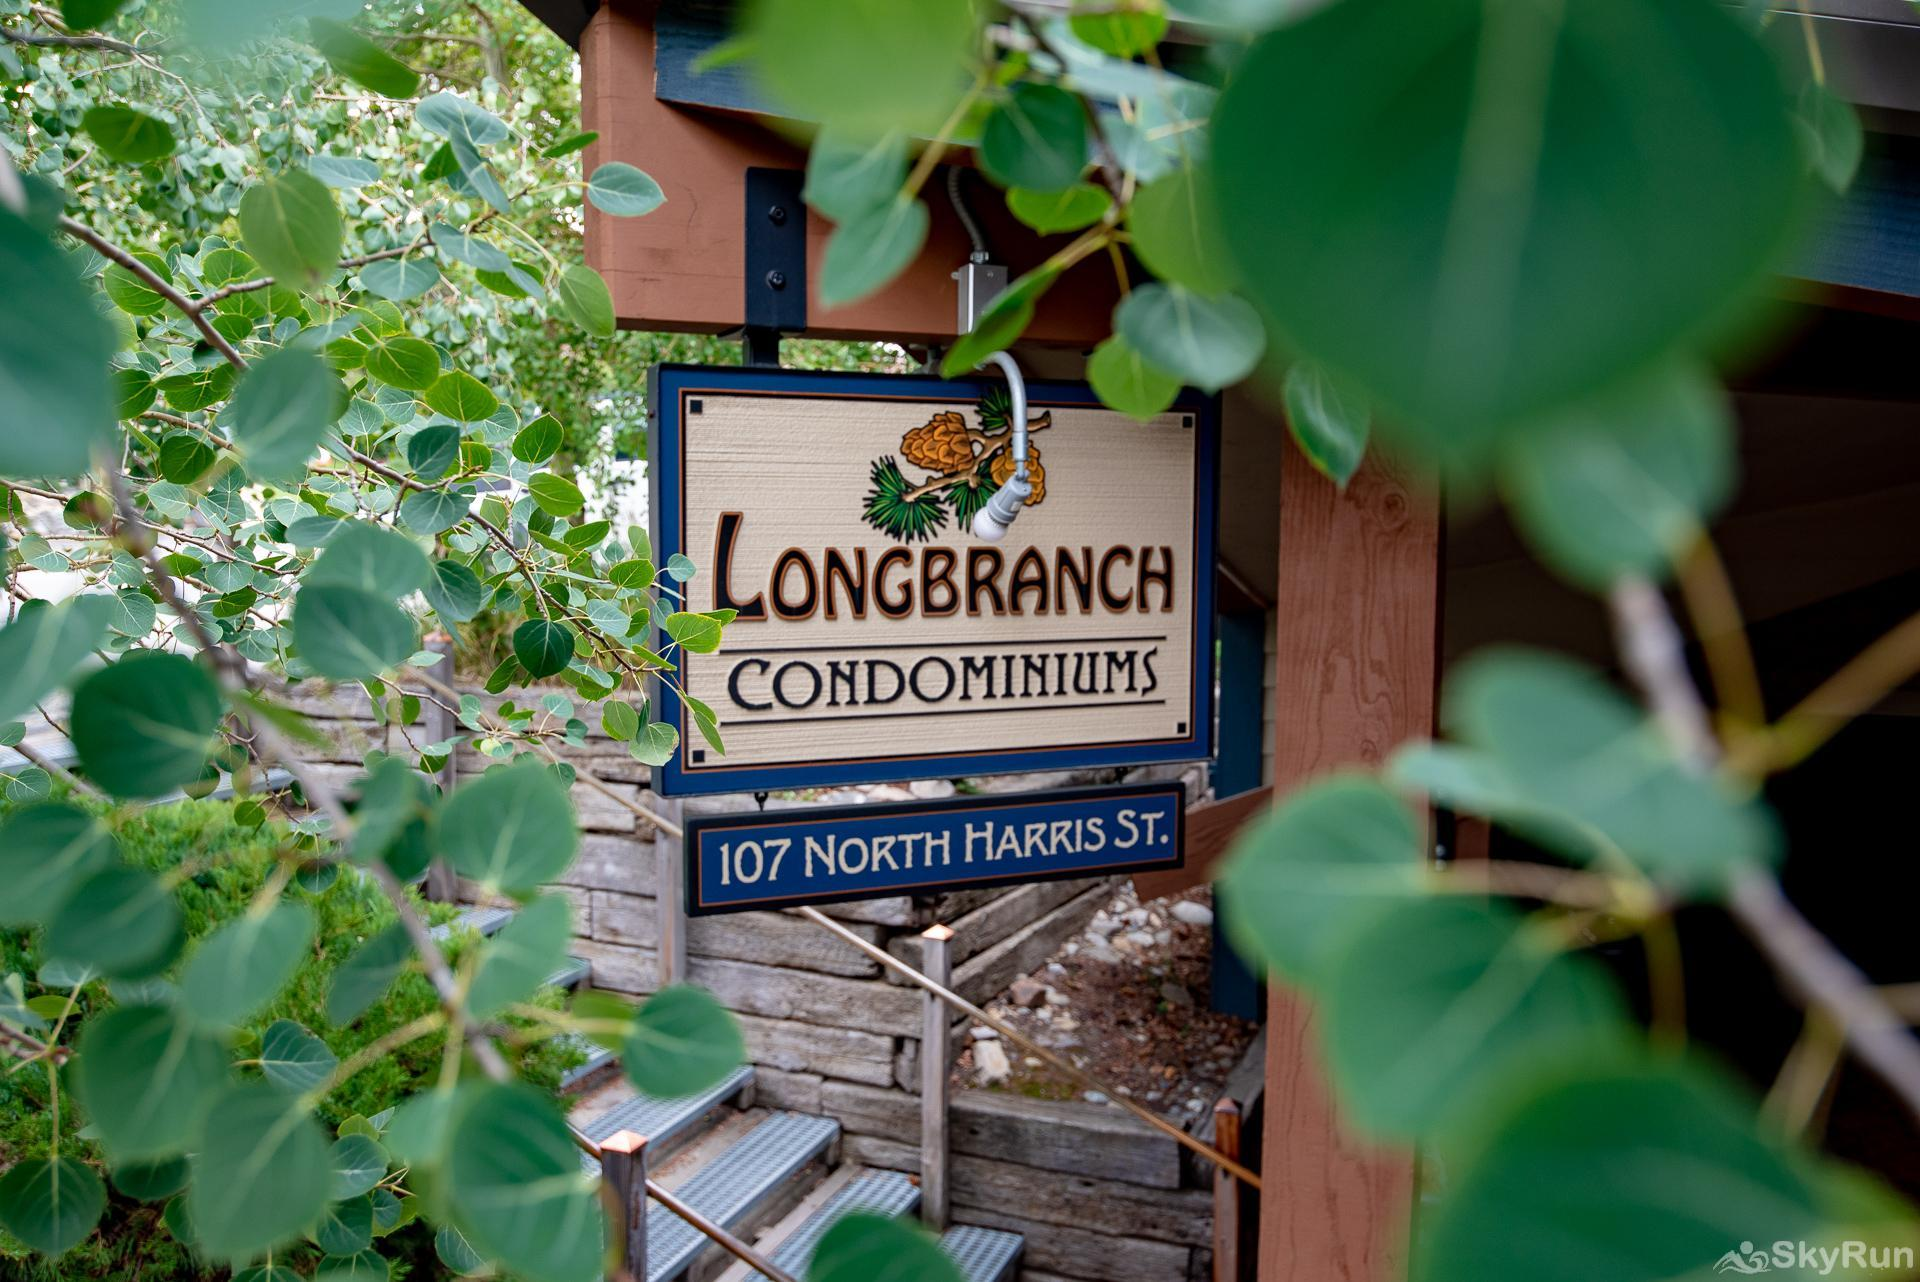 Longbranch 318 Longbranch Condominiums sign